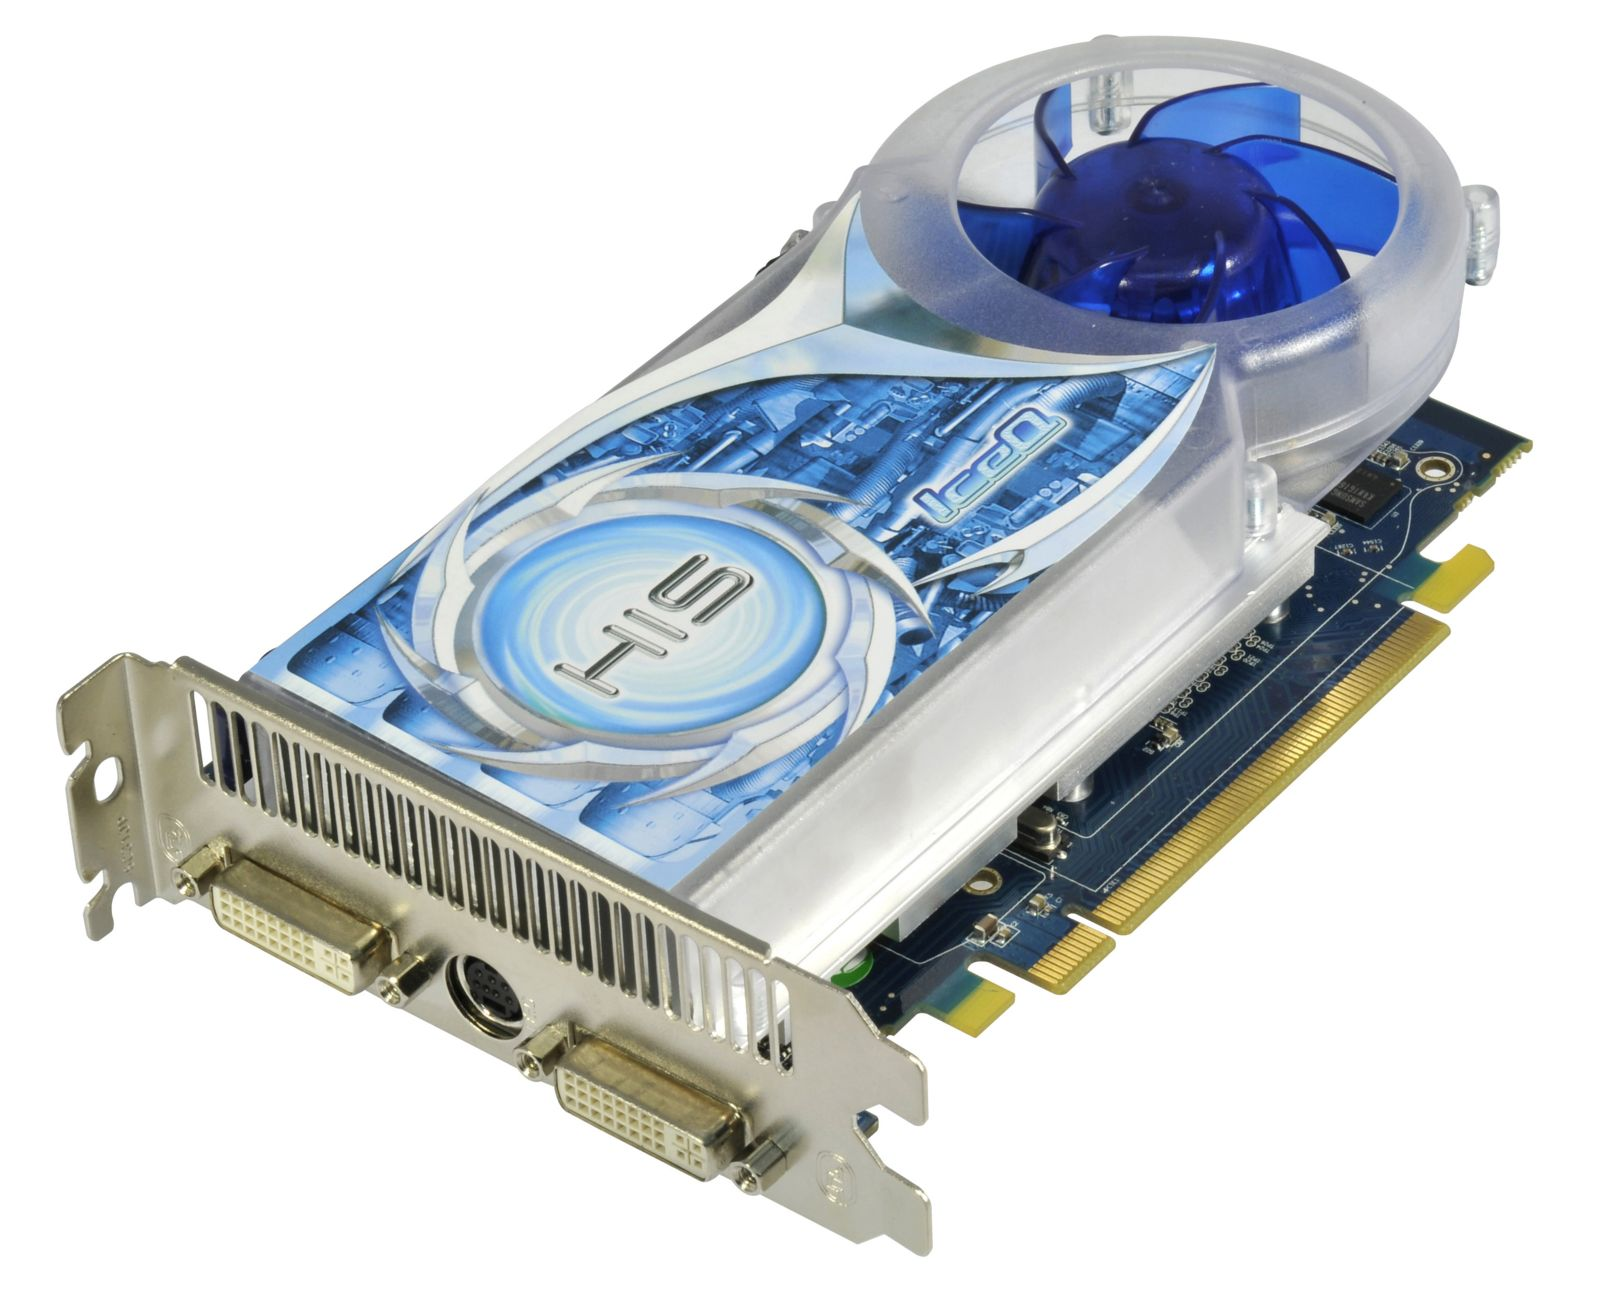 HIS HD 4670 IceQ 1GB (128bit) 850 MHz DDR3 PCIe < Legacy Products ...